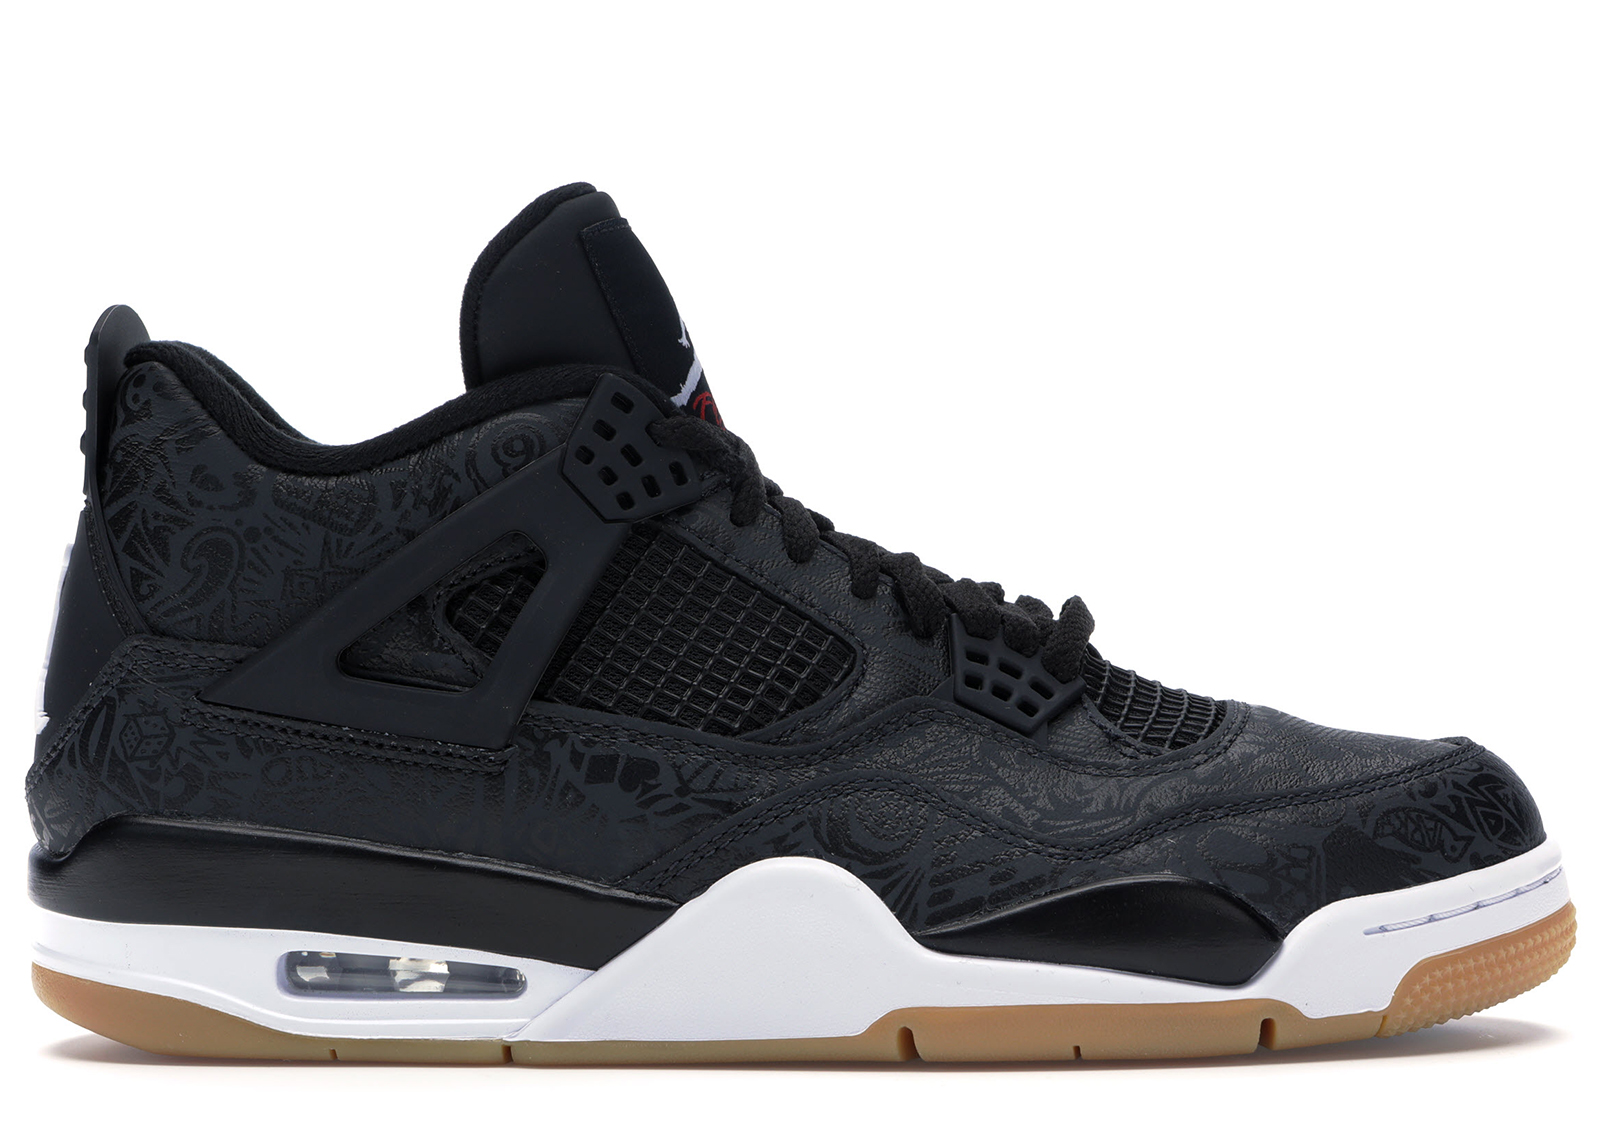 NIKE AIR JORDAN IV RETRO LASER BLACK